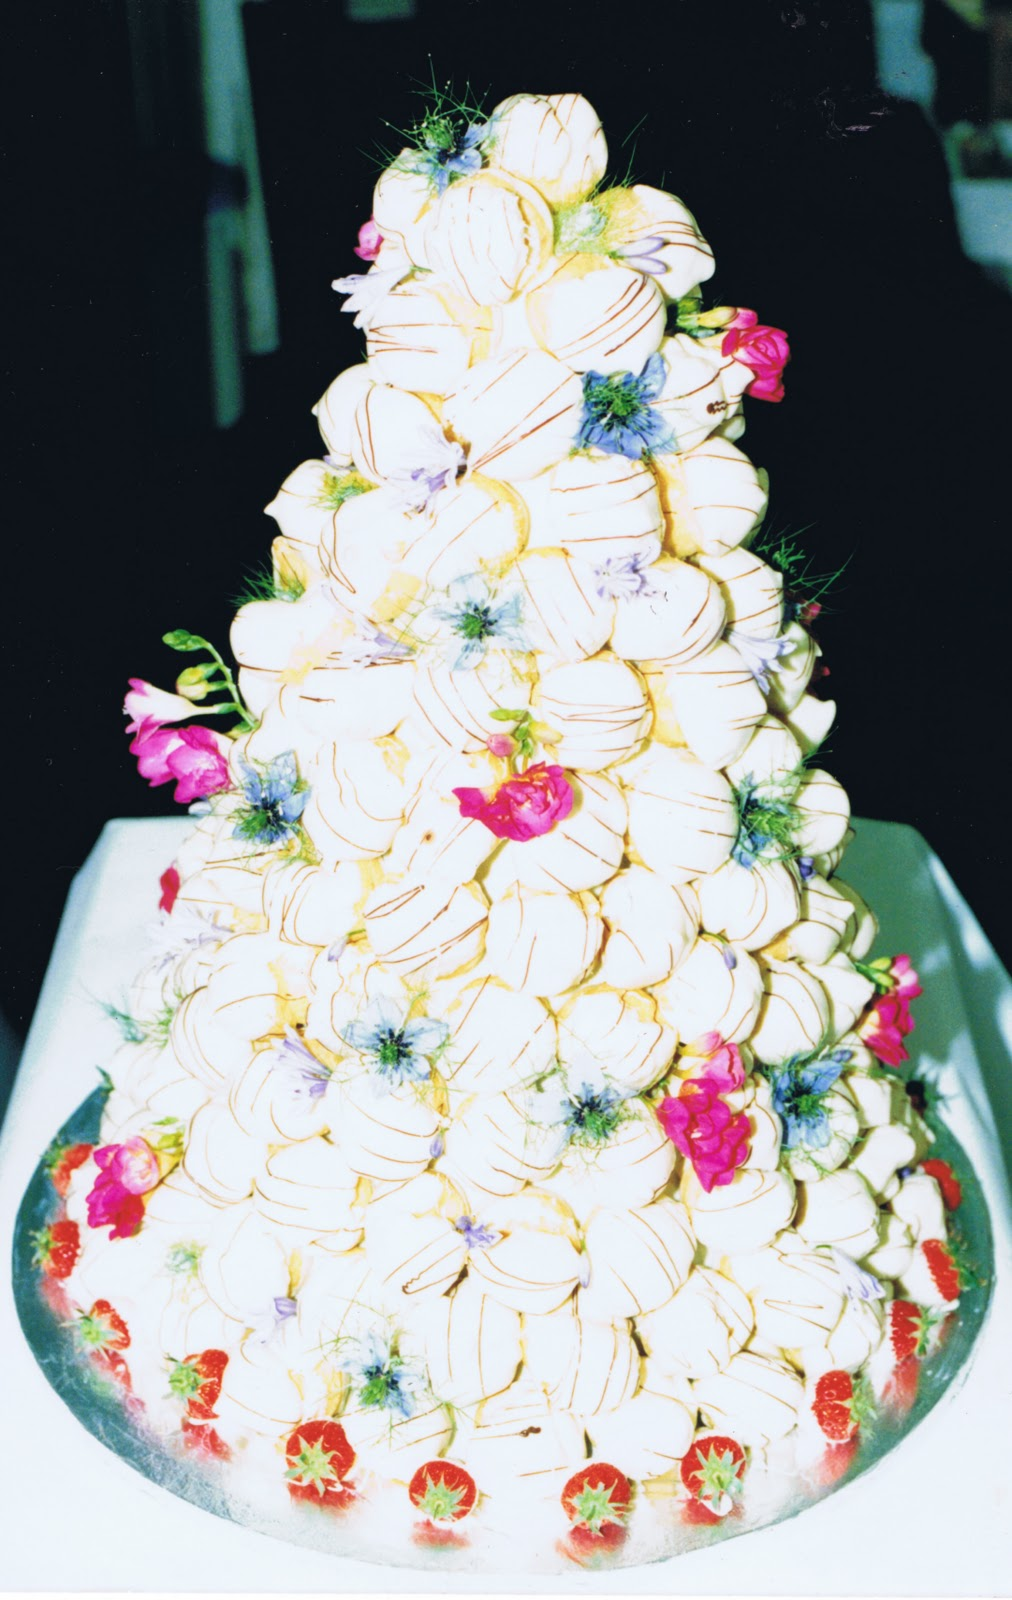 Marron and Dolce: French Wedding Cake - Croquembouche